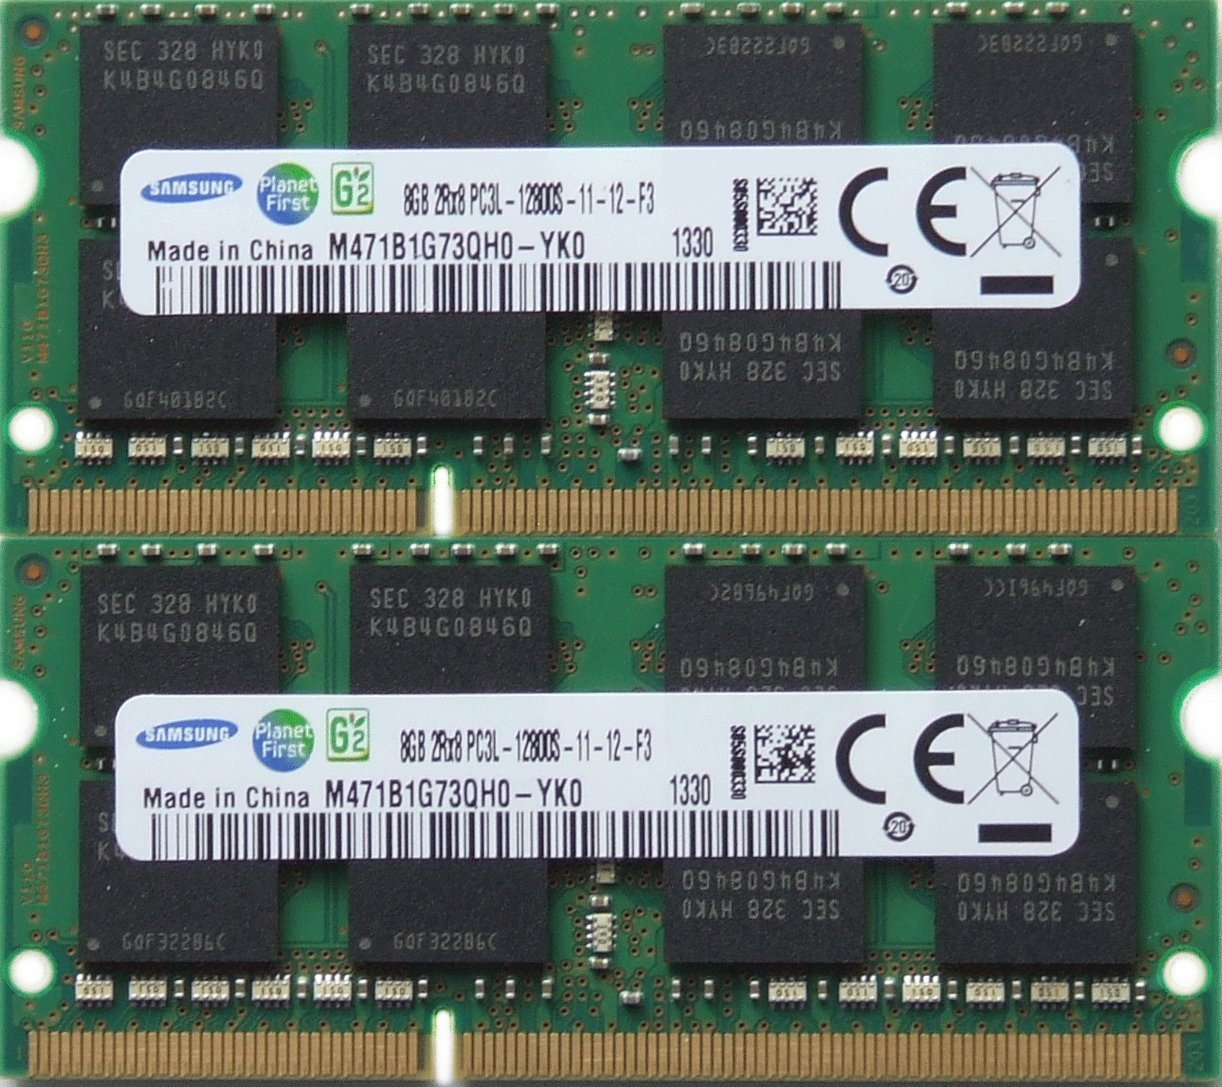 Samsung ram memory upgrade DDR3 PC3 12800, 1600MHz, 204 PIN, SODIMM for 2012 Apple Macbook Pro's, 2012 iMac's, and 2011 / 2012 Mac mini's (16GB kit ( 2 x 8GB ))